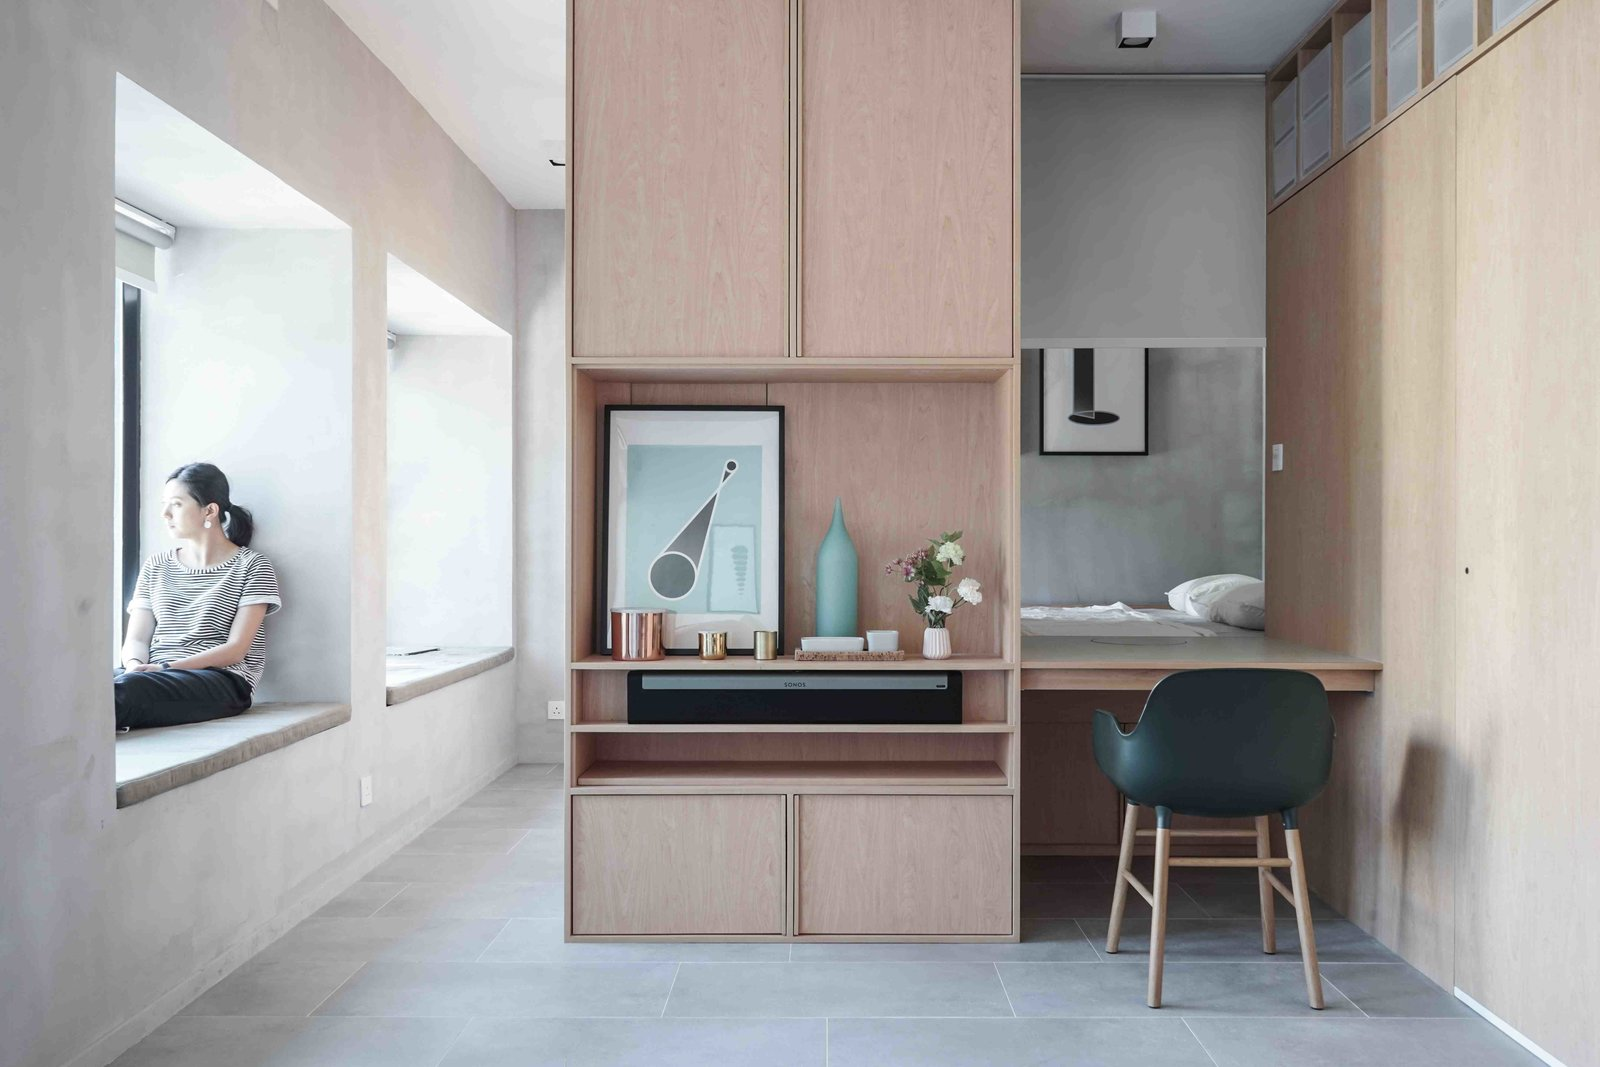 Office, Study Room Type, Chair, Desk, and Cement Tile Floor Small spaces and tiny homes present some physical limitations, but they actually make room for imaginative solutions.   Dwell's Favorite Photos from 10 Small Apartments by a Hong Kong Design Studio That Are Less Than 1,000 Square Feet